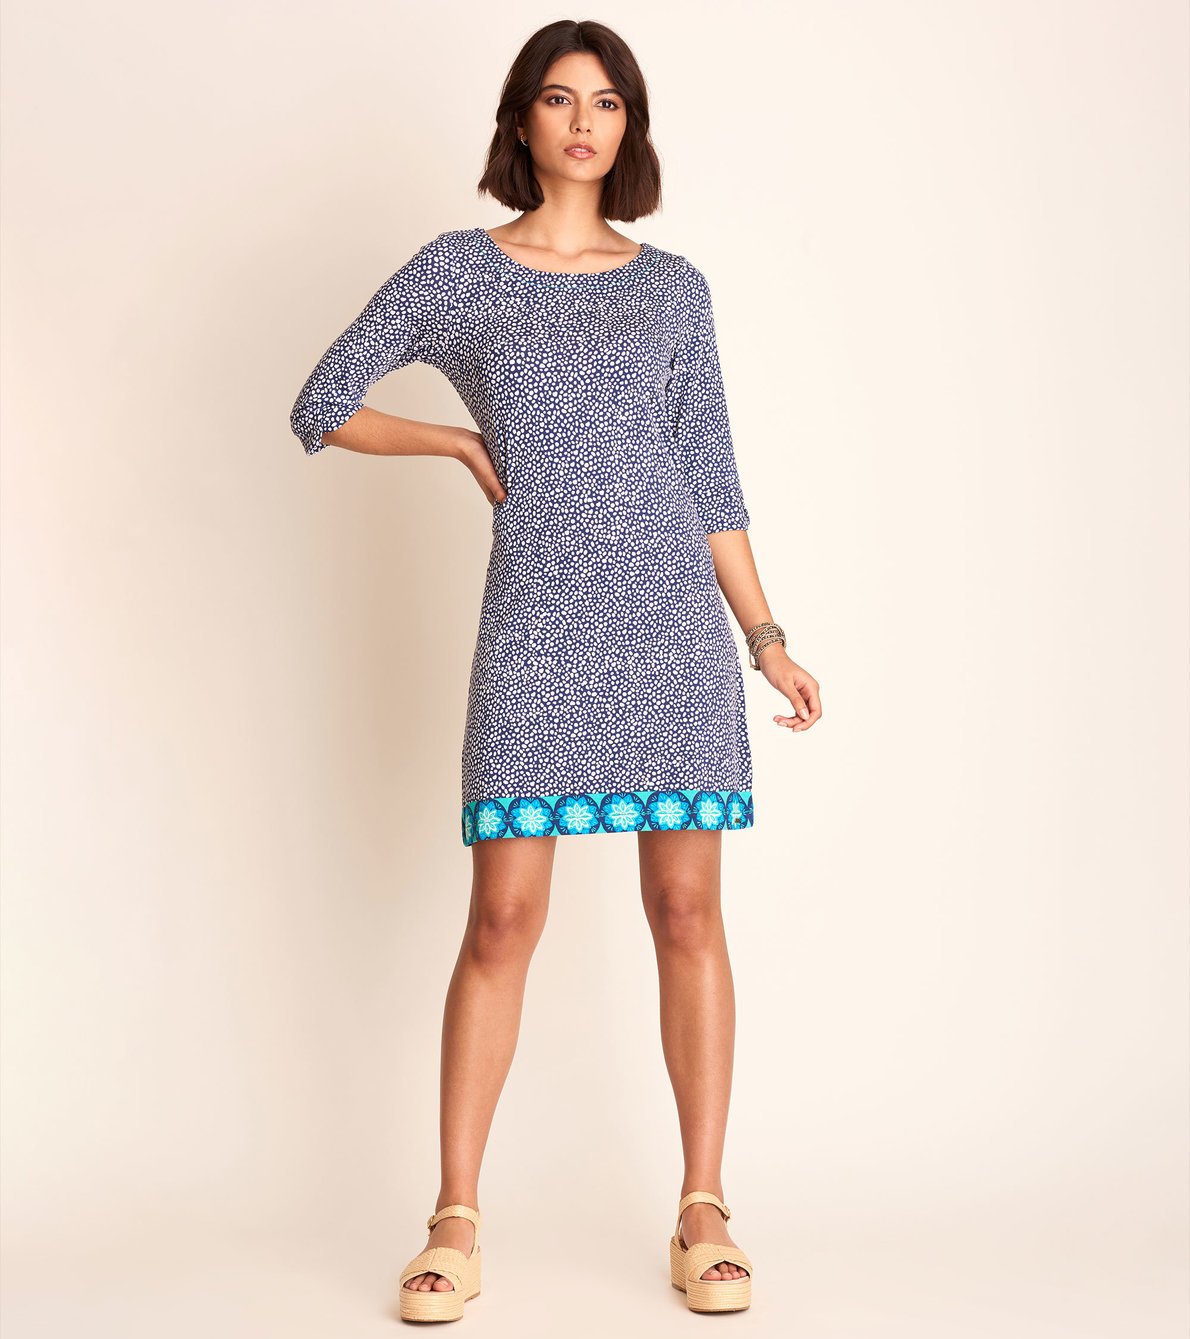 View larger image of Lucy Dress - Blue Micro dots